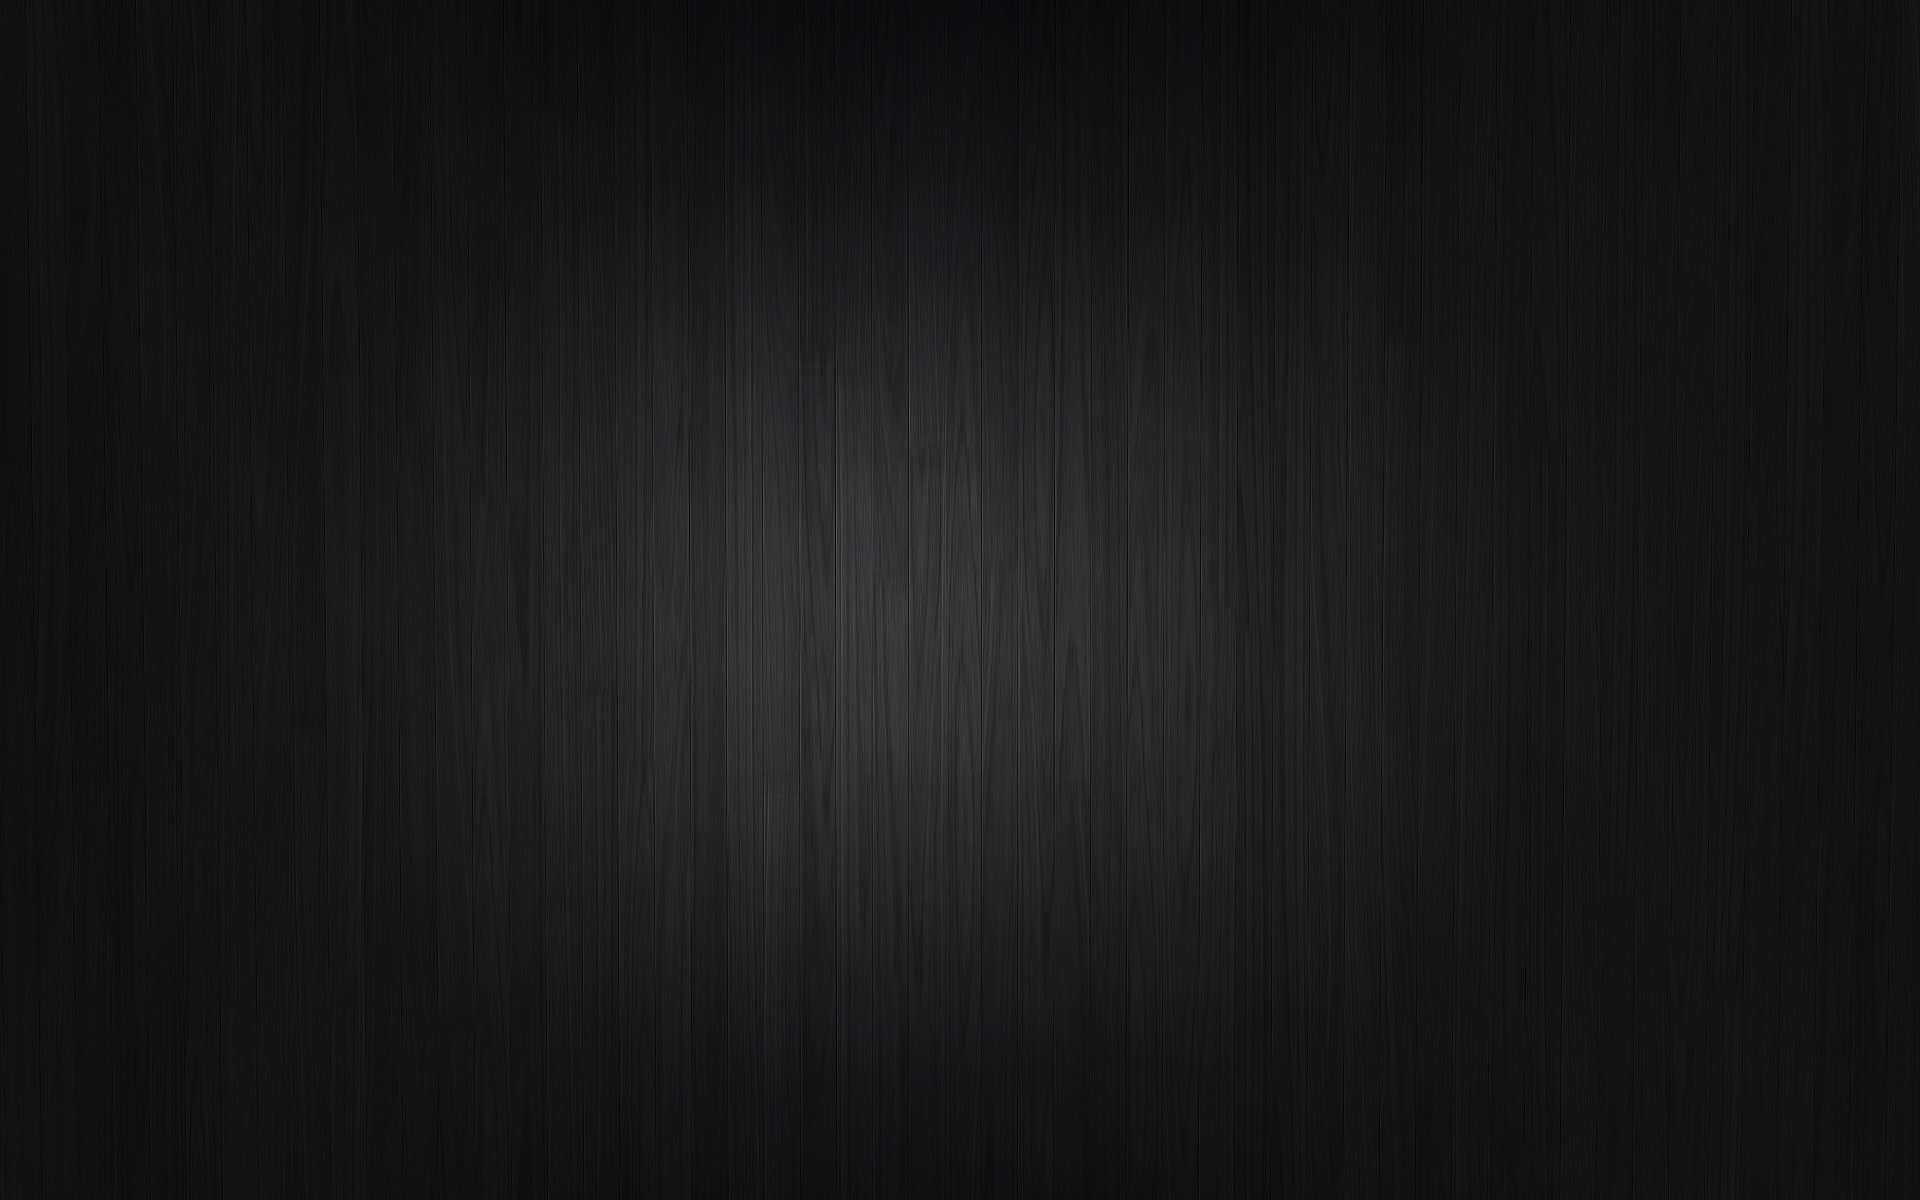 Shiny black wallpaper 68 images - Black and white hd wallpapers black background ...